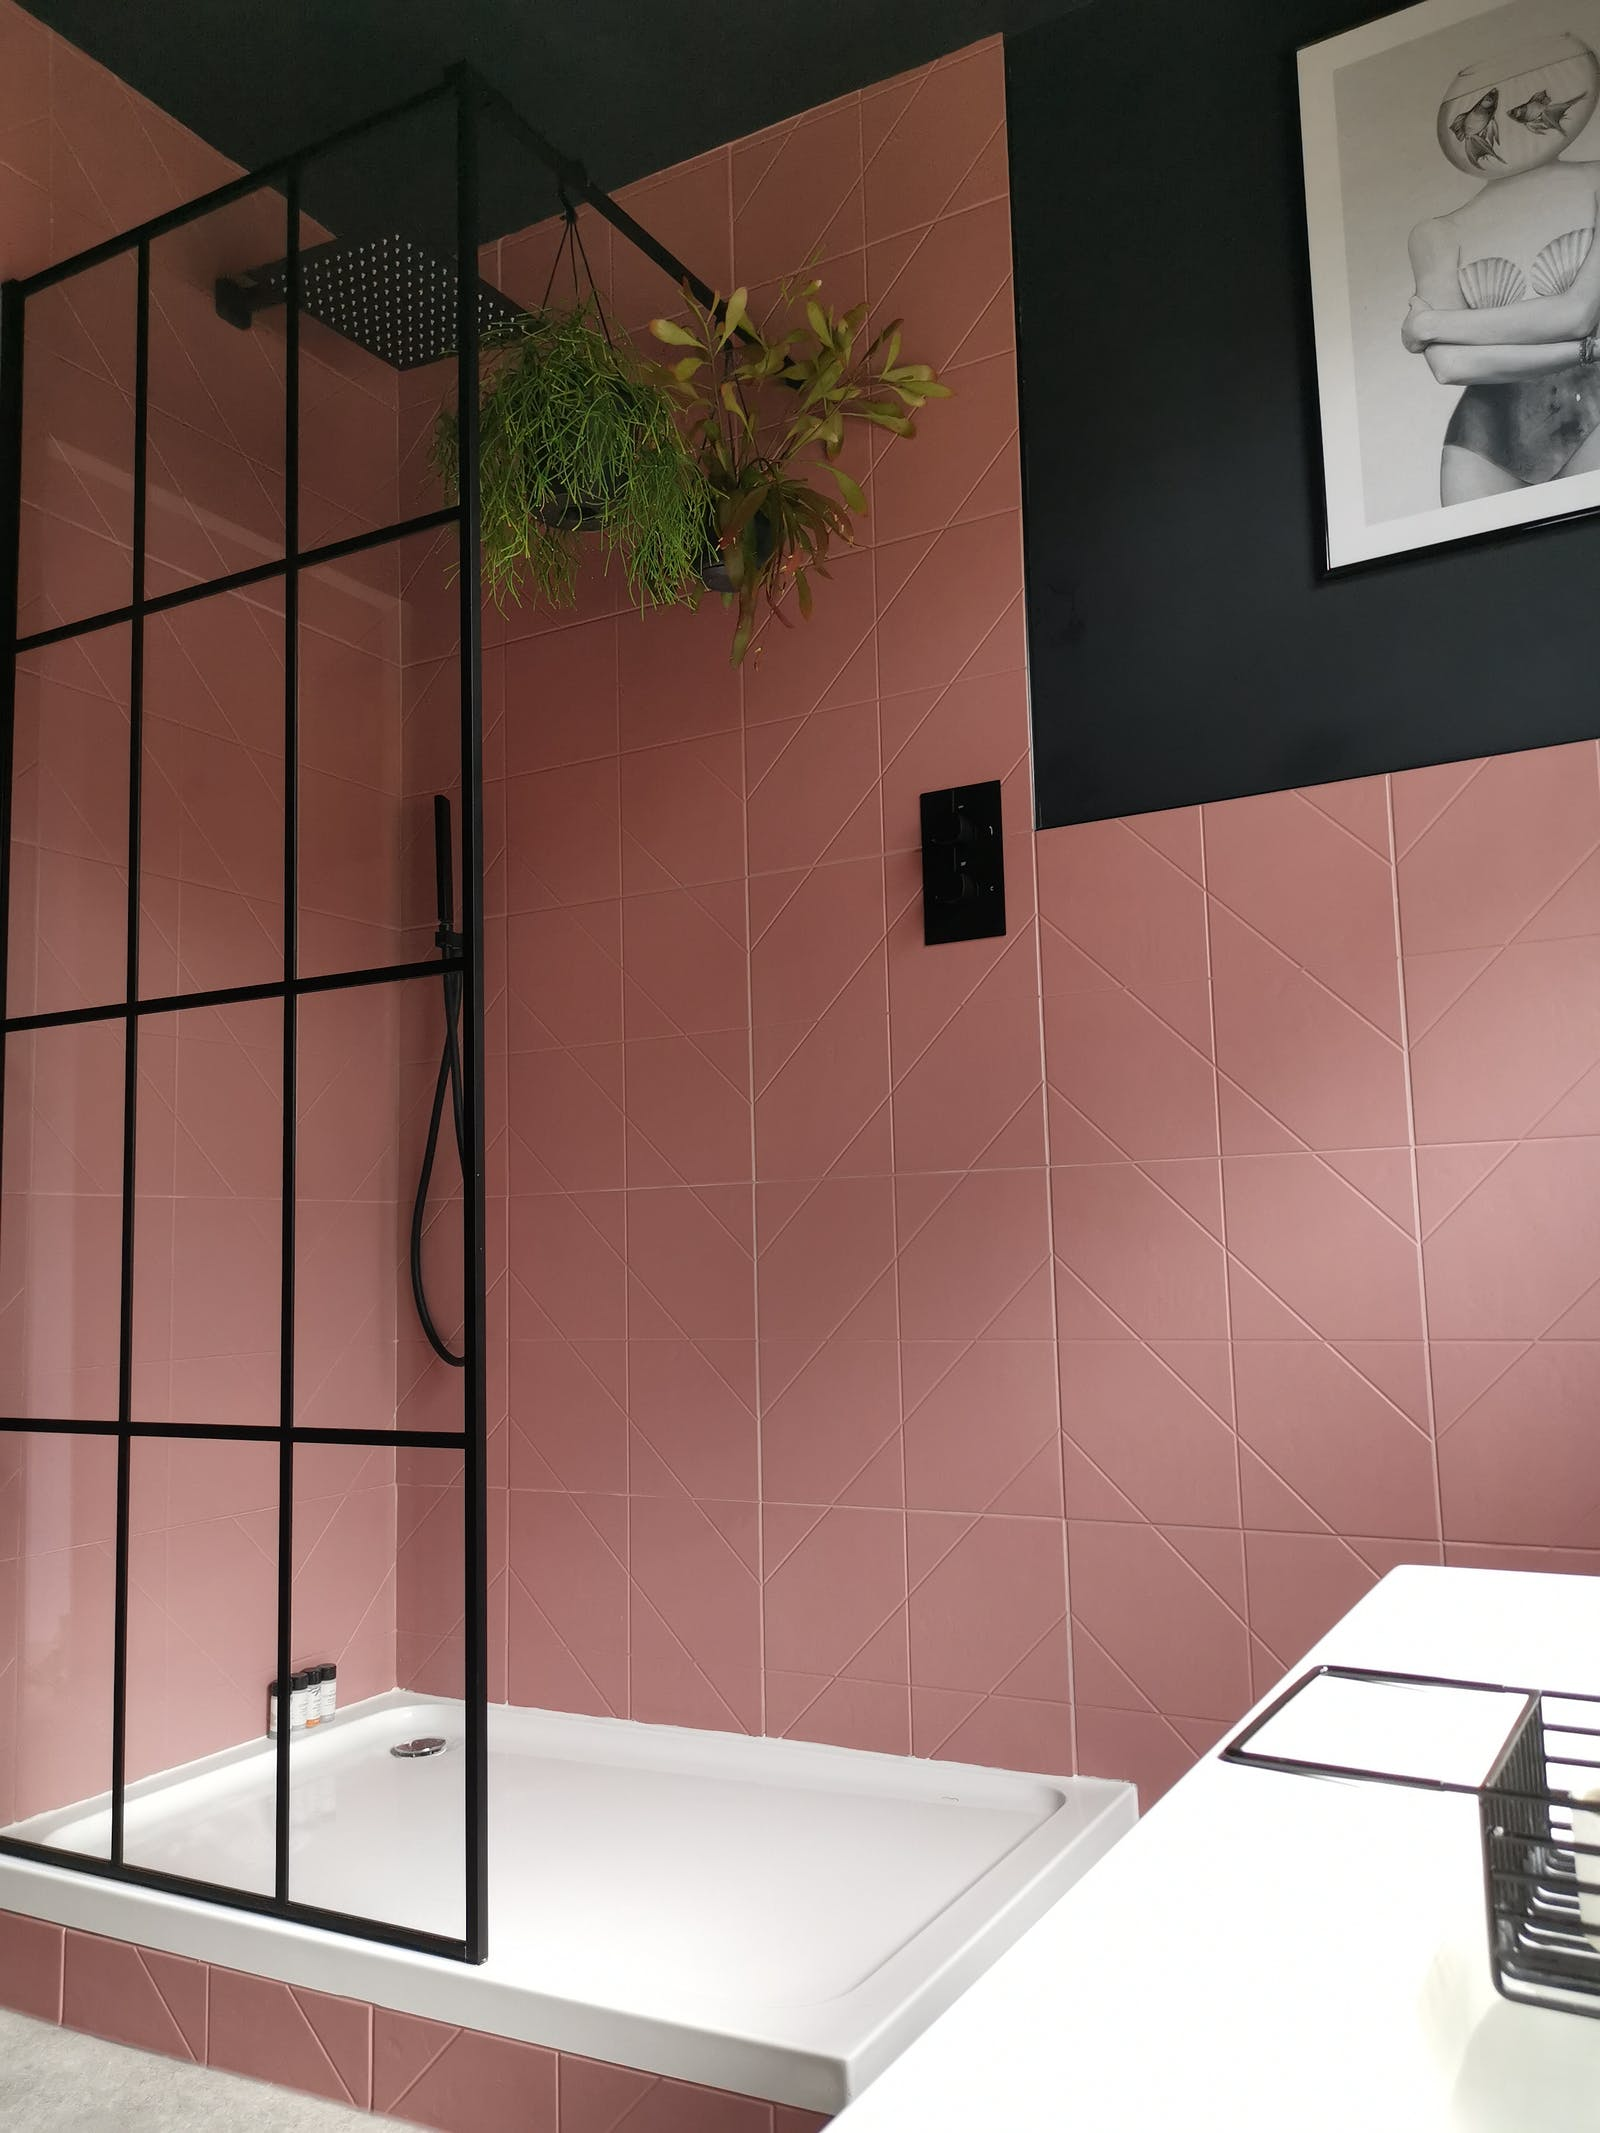 Shower area in a bathroom painted in black with pink tiles